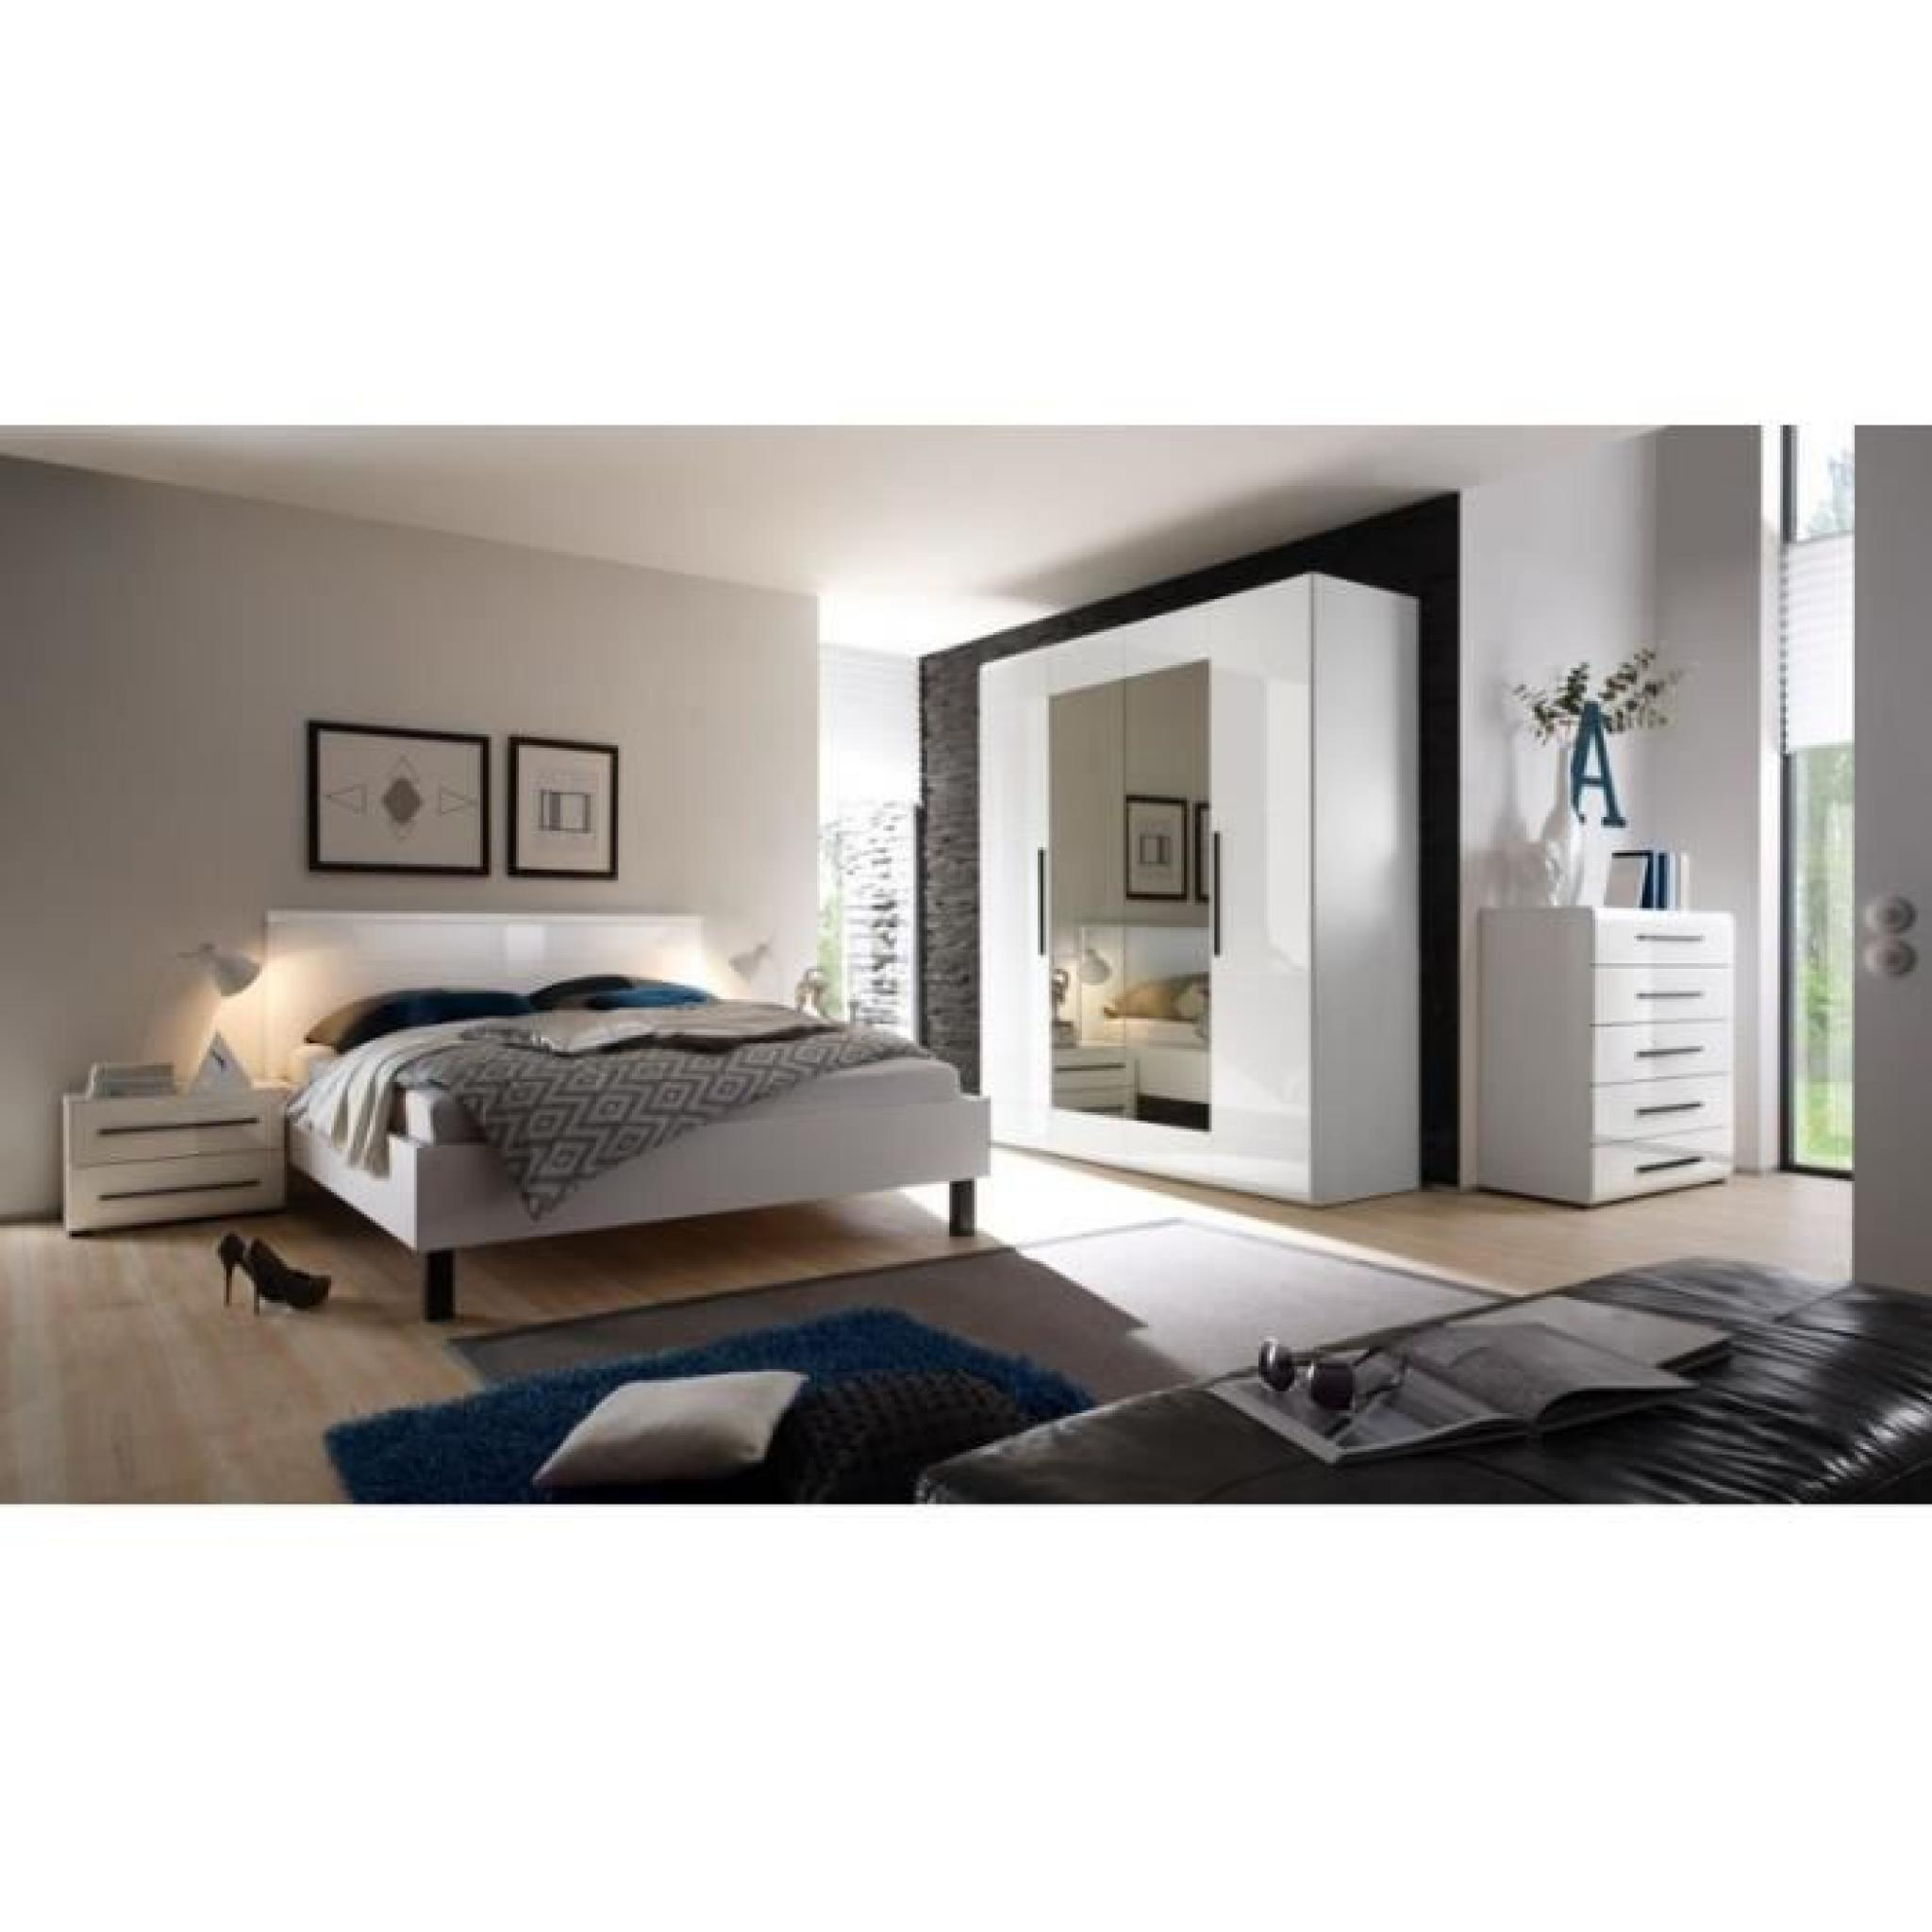 Chambre complete luxe mdf ref harmonya achat vente for Chambre complete pas cher